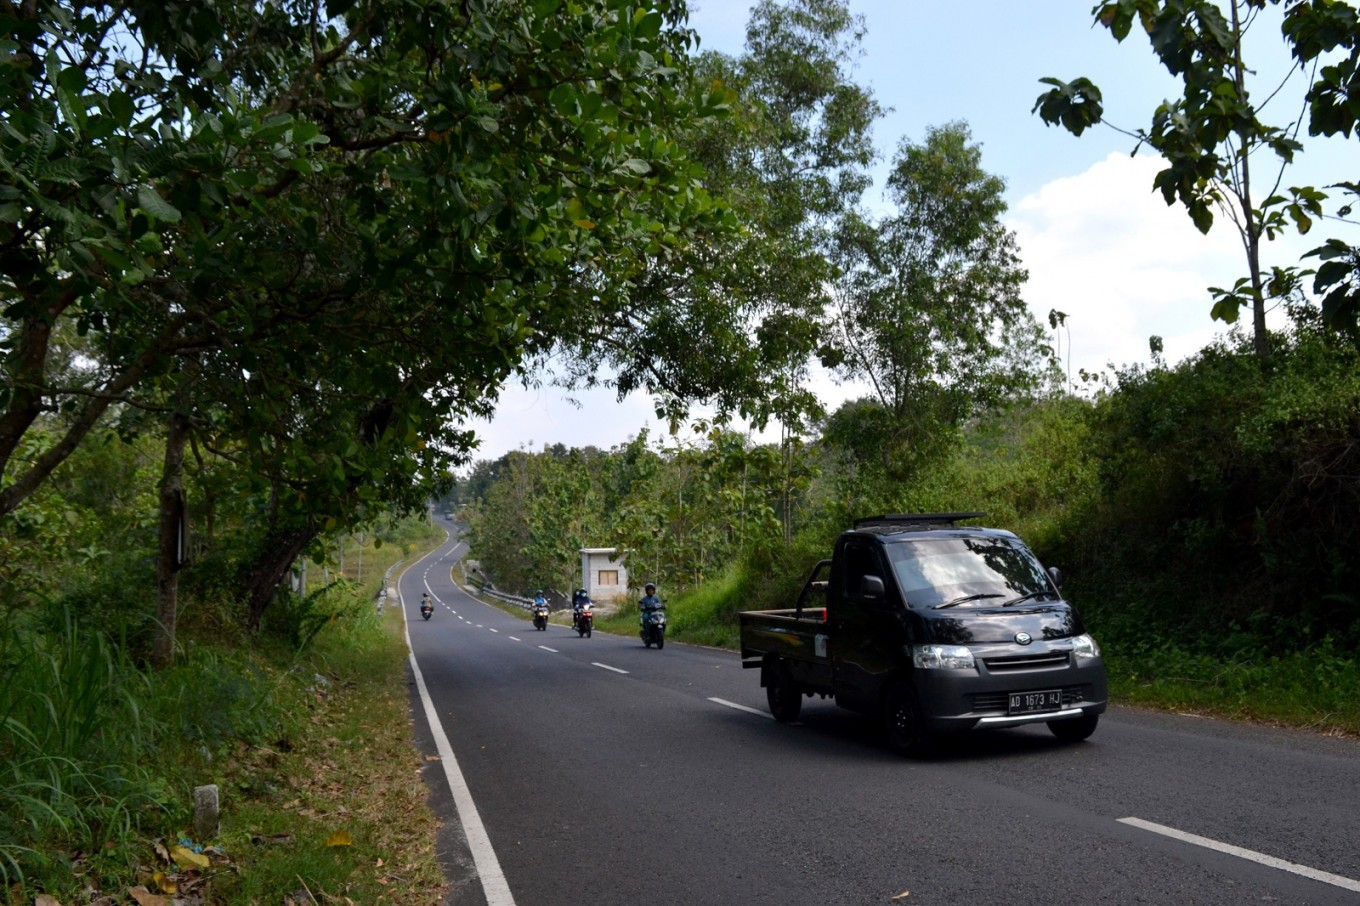 A road in Semin en route to Klaten, Sukoharjo, or Wonogiri.